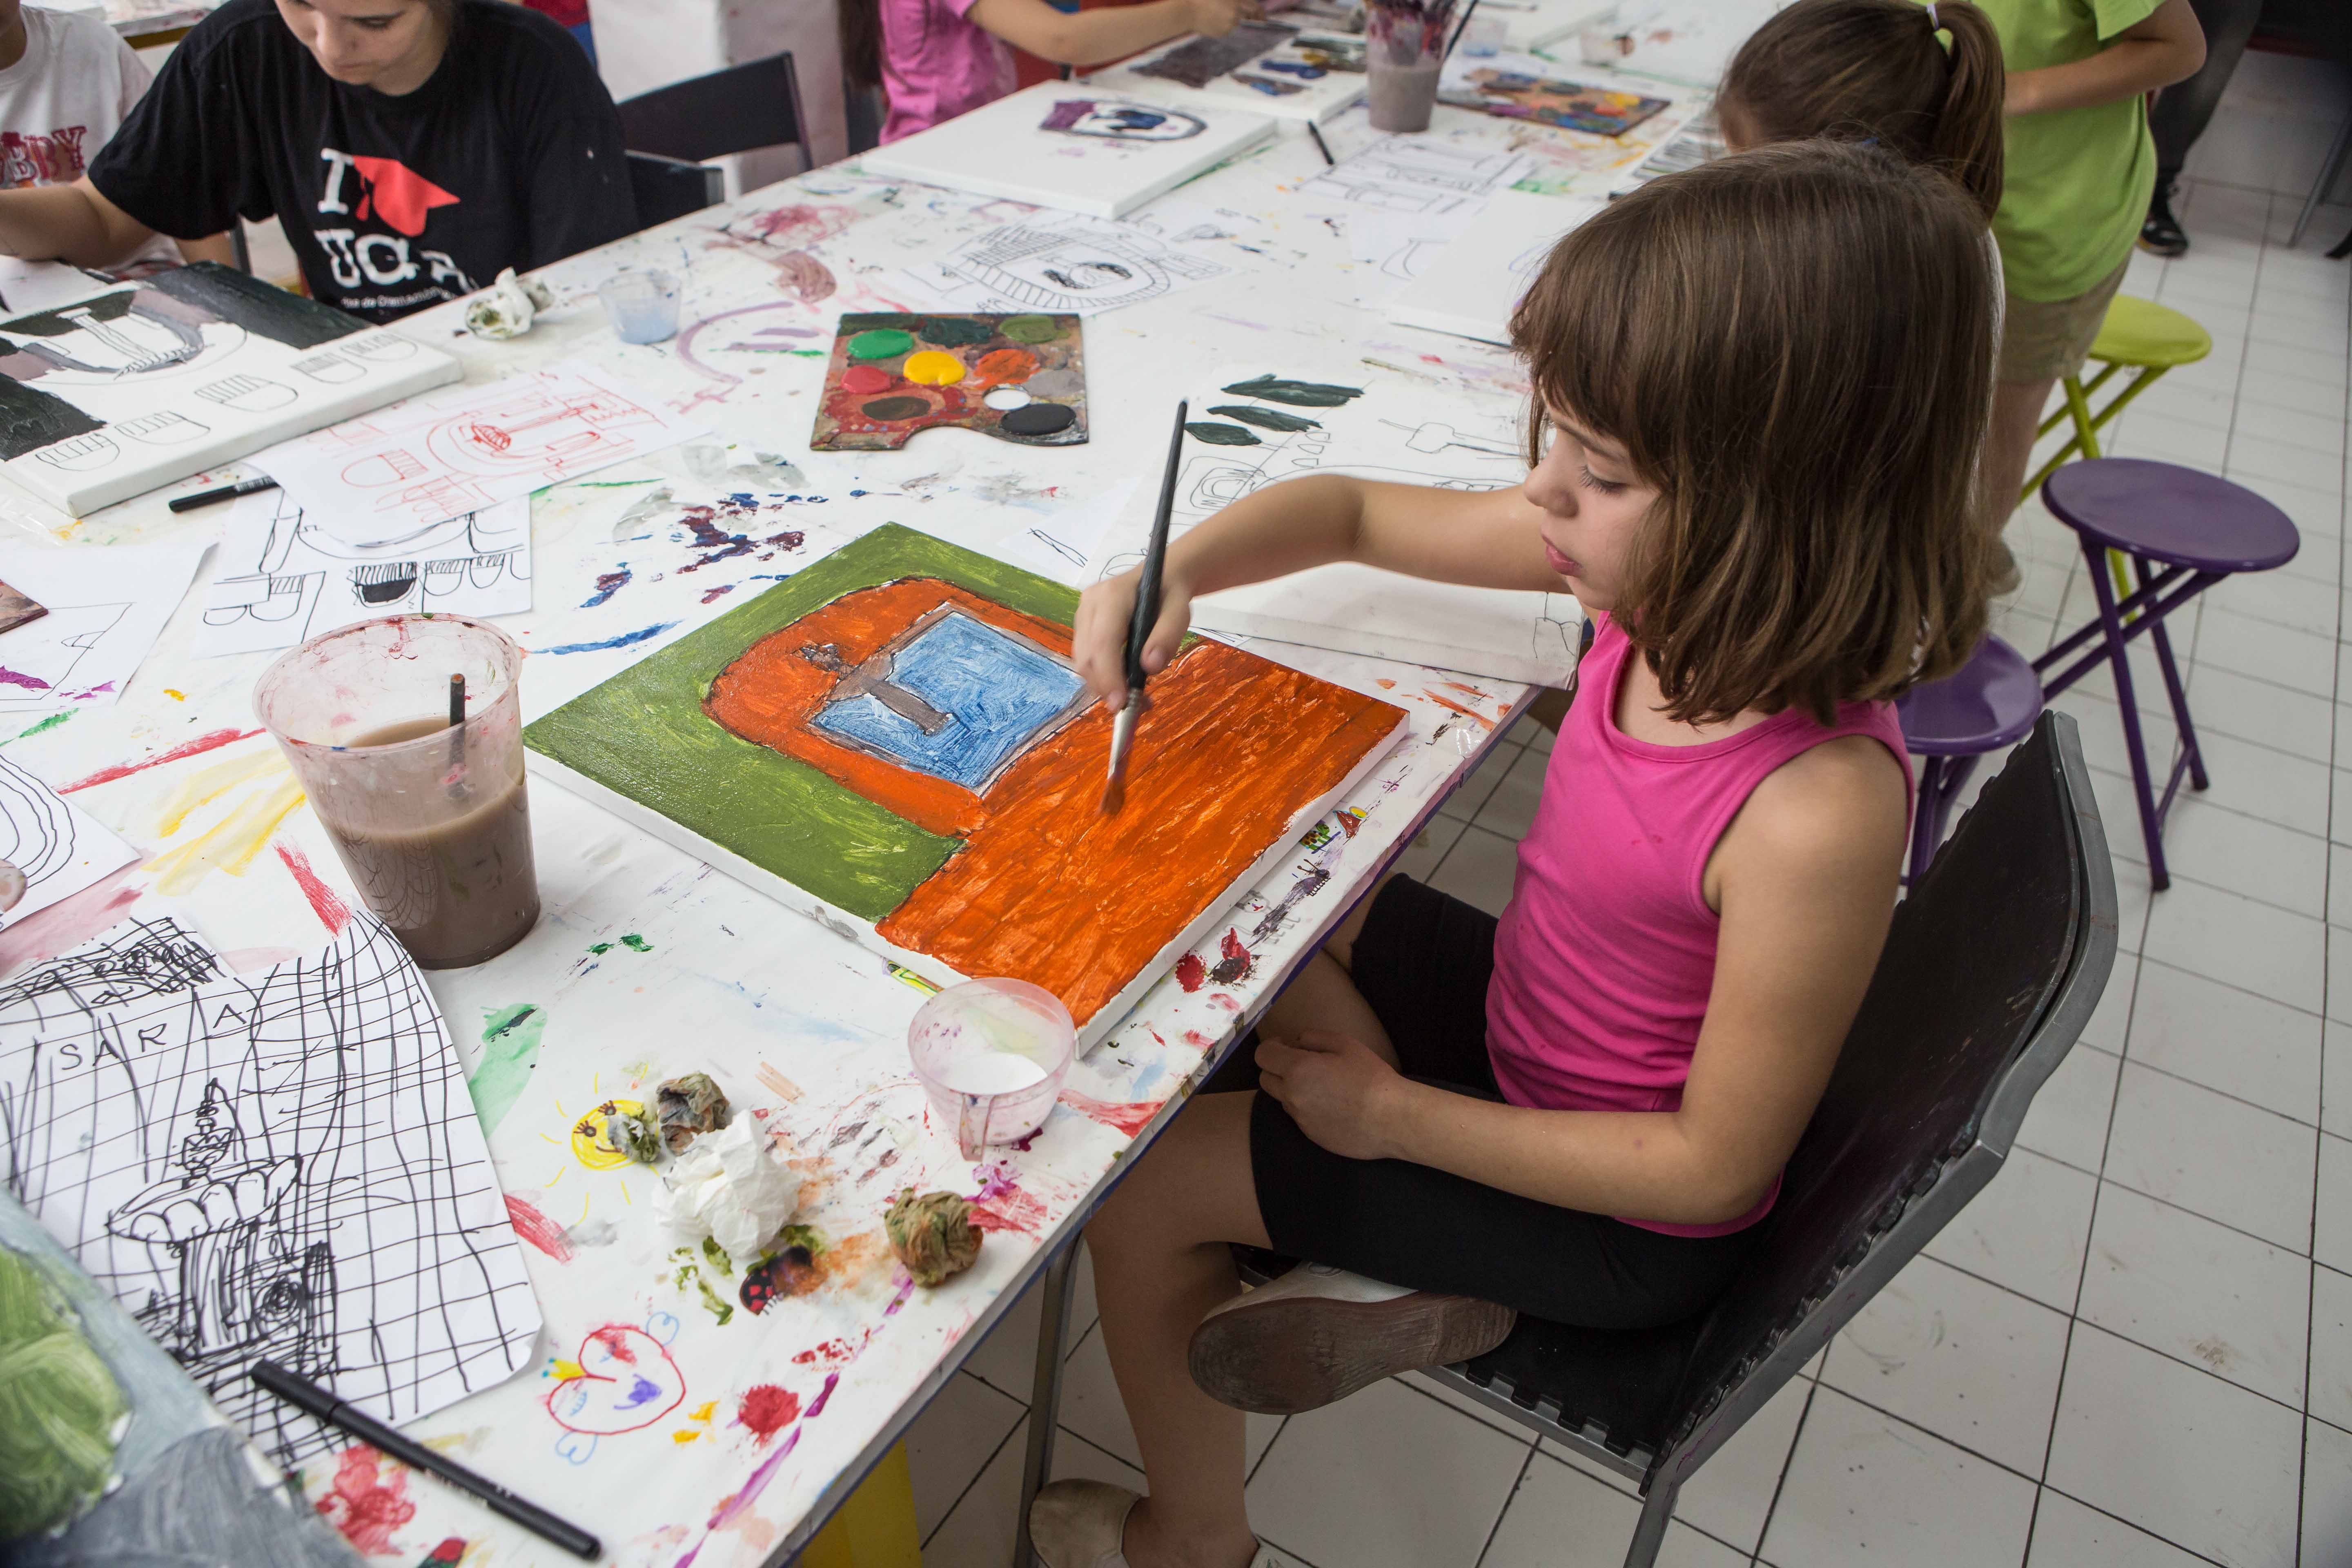 This summer the Rodríguez-Acosta Foundation is organizing workshops for children in archaeology, painting and literature